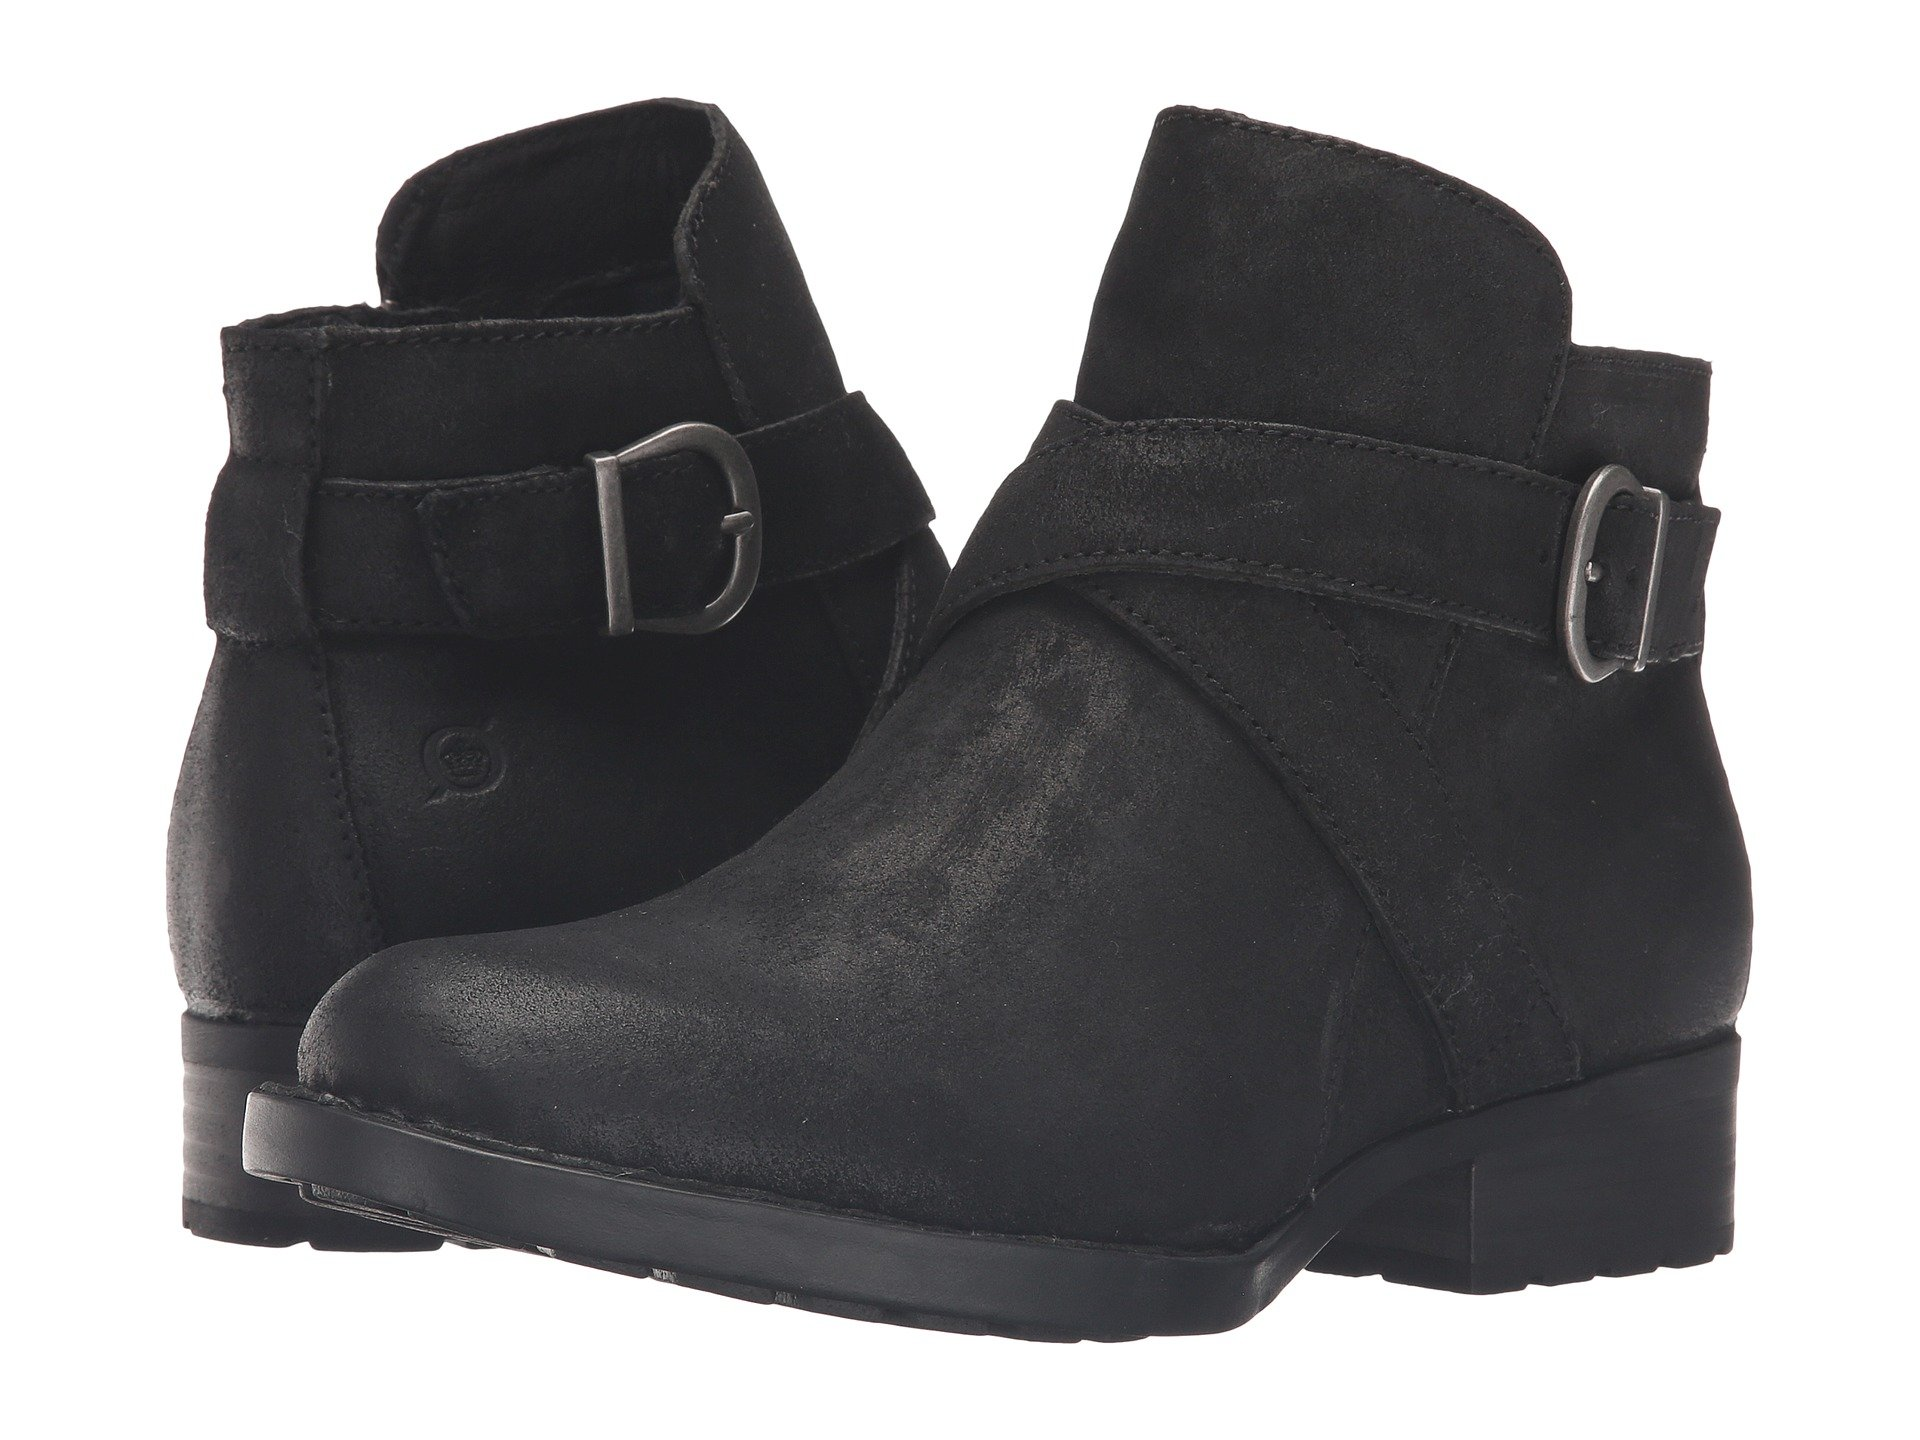 0259cdc7c82 Women s Born Boots + FREE SHIPPING